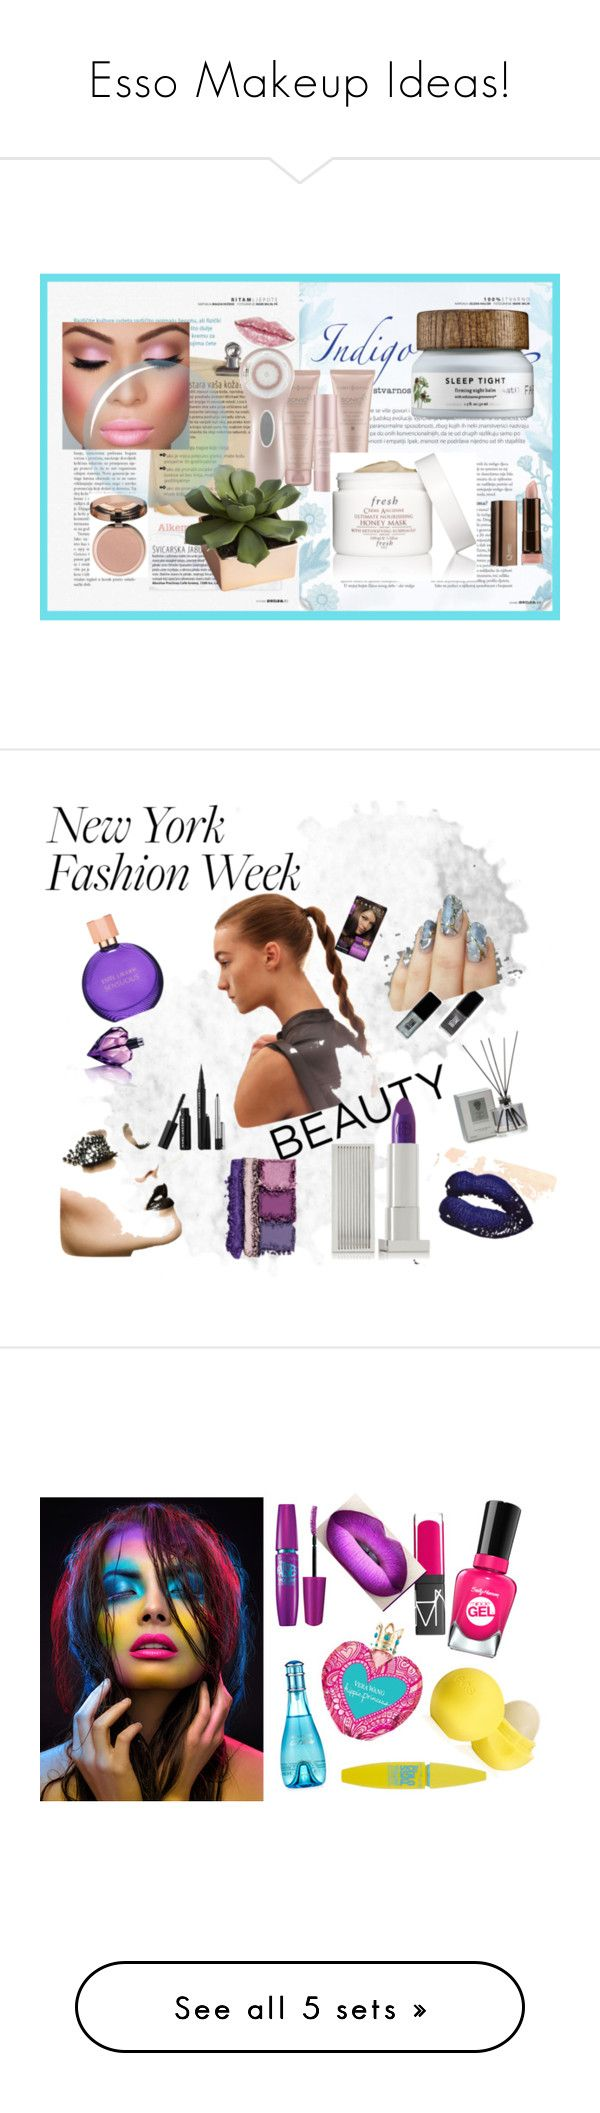 Esso Makeup Ideas! by essonya on Polyvore featuring polyvore, fashion, style, clothing, beauty, Estée Lauder, JINsoon, Clairol, Acqua di Stresa, Diesel, Marc Jacobs, Lipstick Queen, NYFW, Beauty, DVF, NARS Cosmetics, Davidoff, Eos, Maybelline, Sally Hansen, Yves Saint Laurent, Dolce Vita, Christian Dior, Lancôme, Laura Mercier, Forever 21, Topshop, Urban Decay, ORLY, beautyroutine and Winky Lux